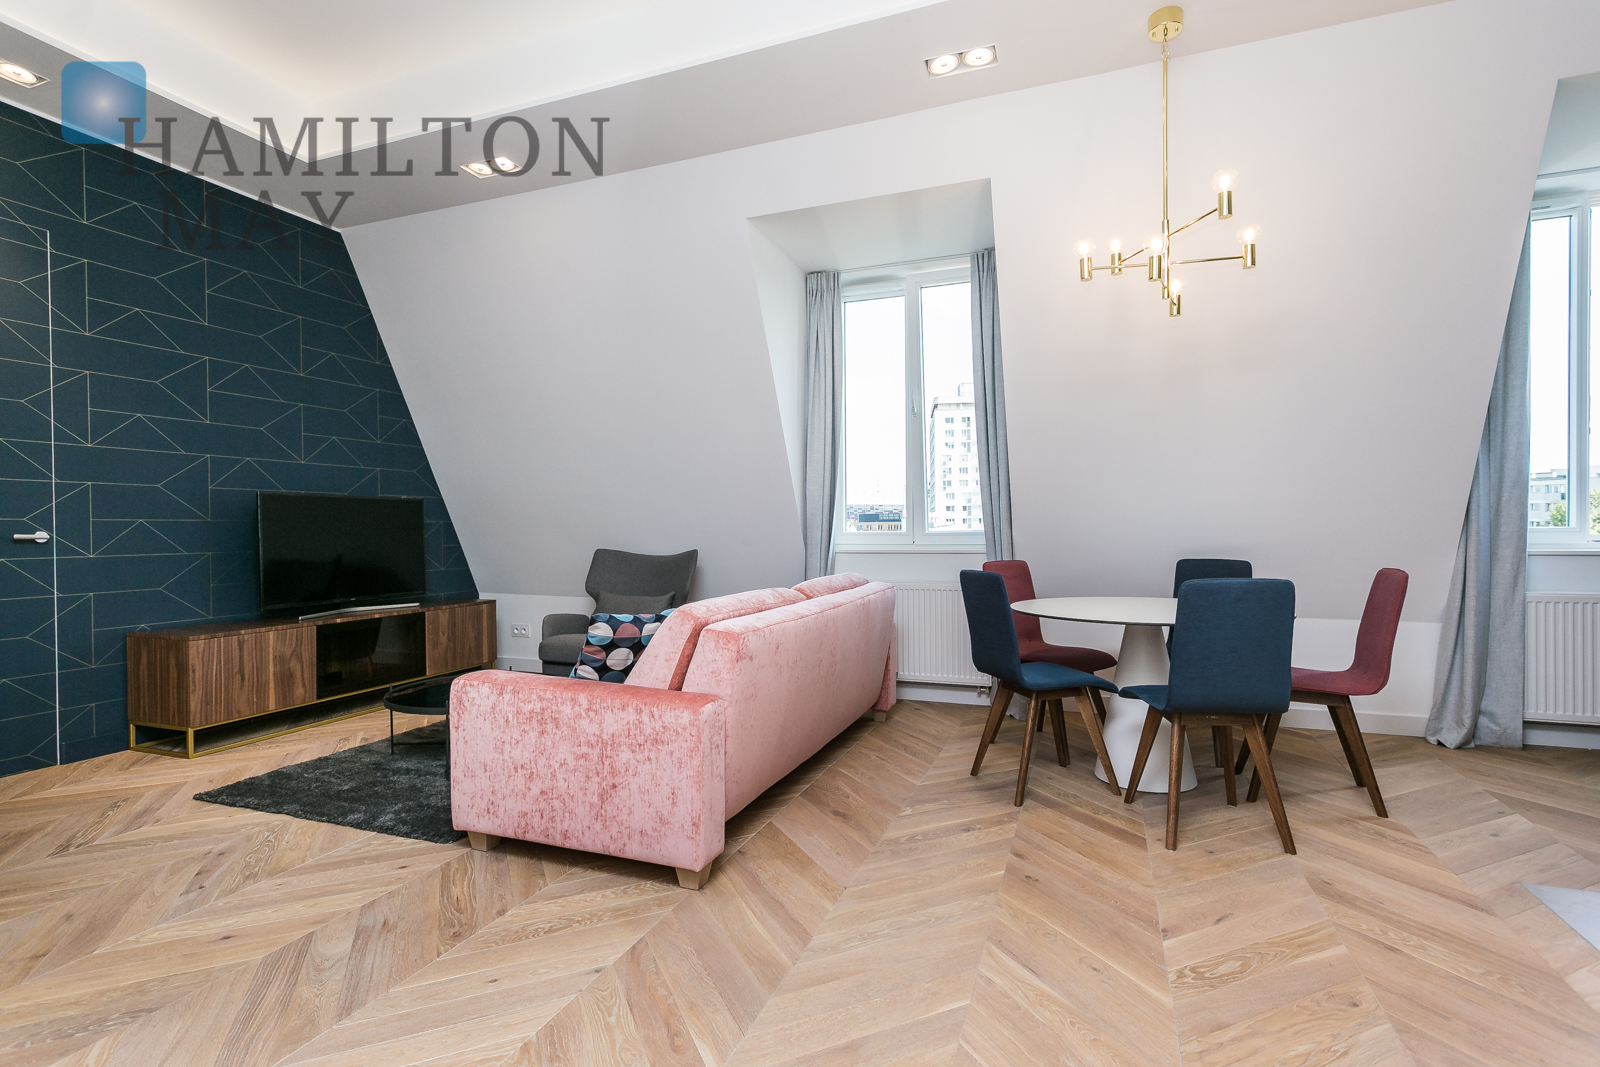 A one bedroom apartment in a renovated townhouse with a view over Powiśle and the National Stadium Warsaw for sale